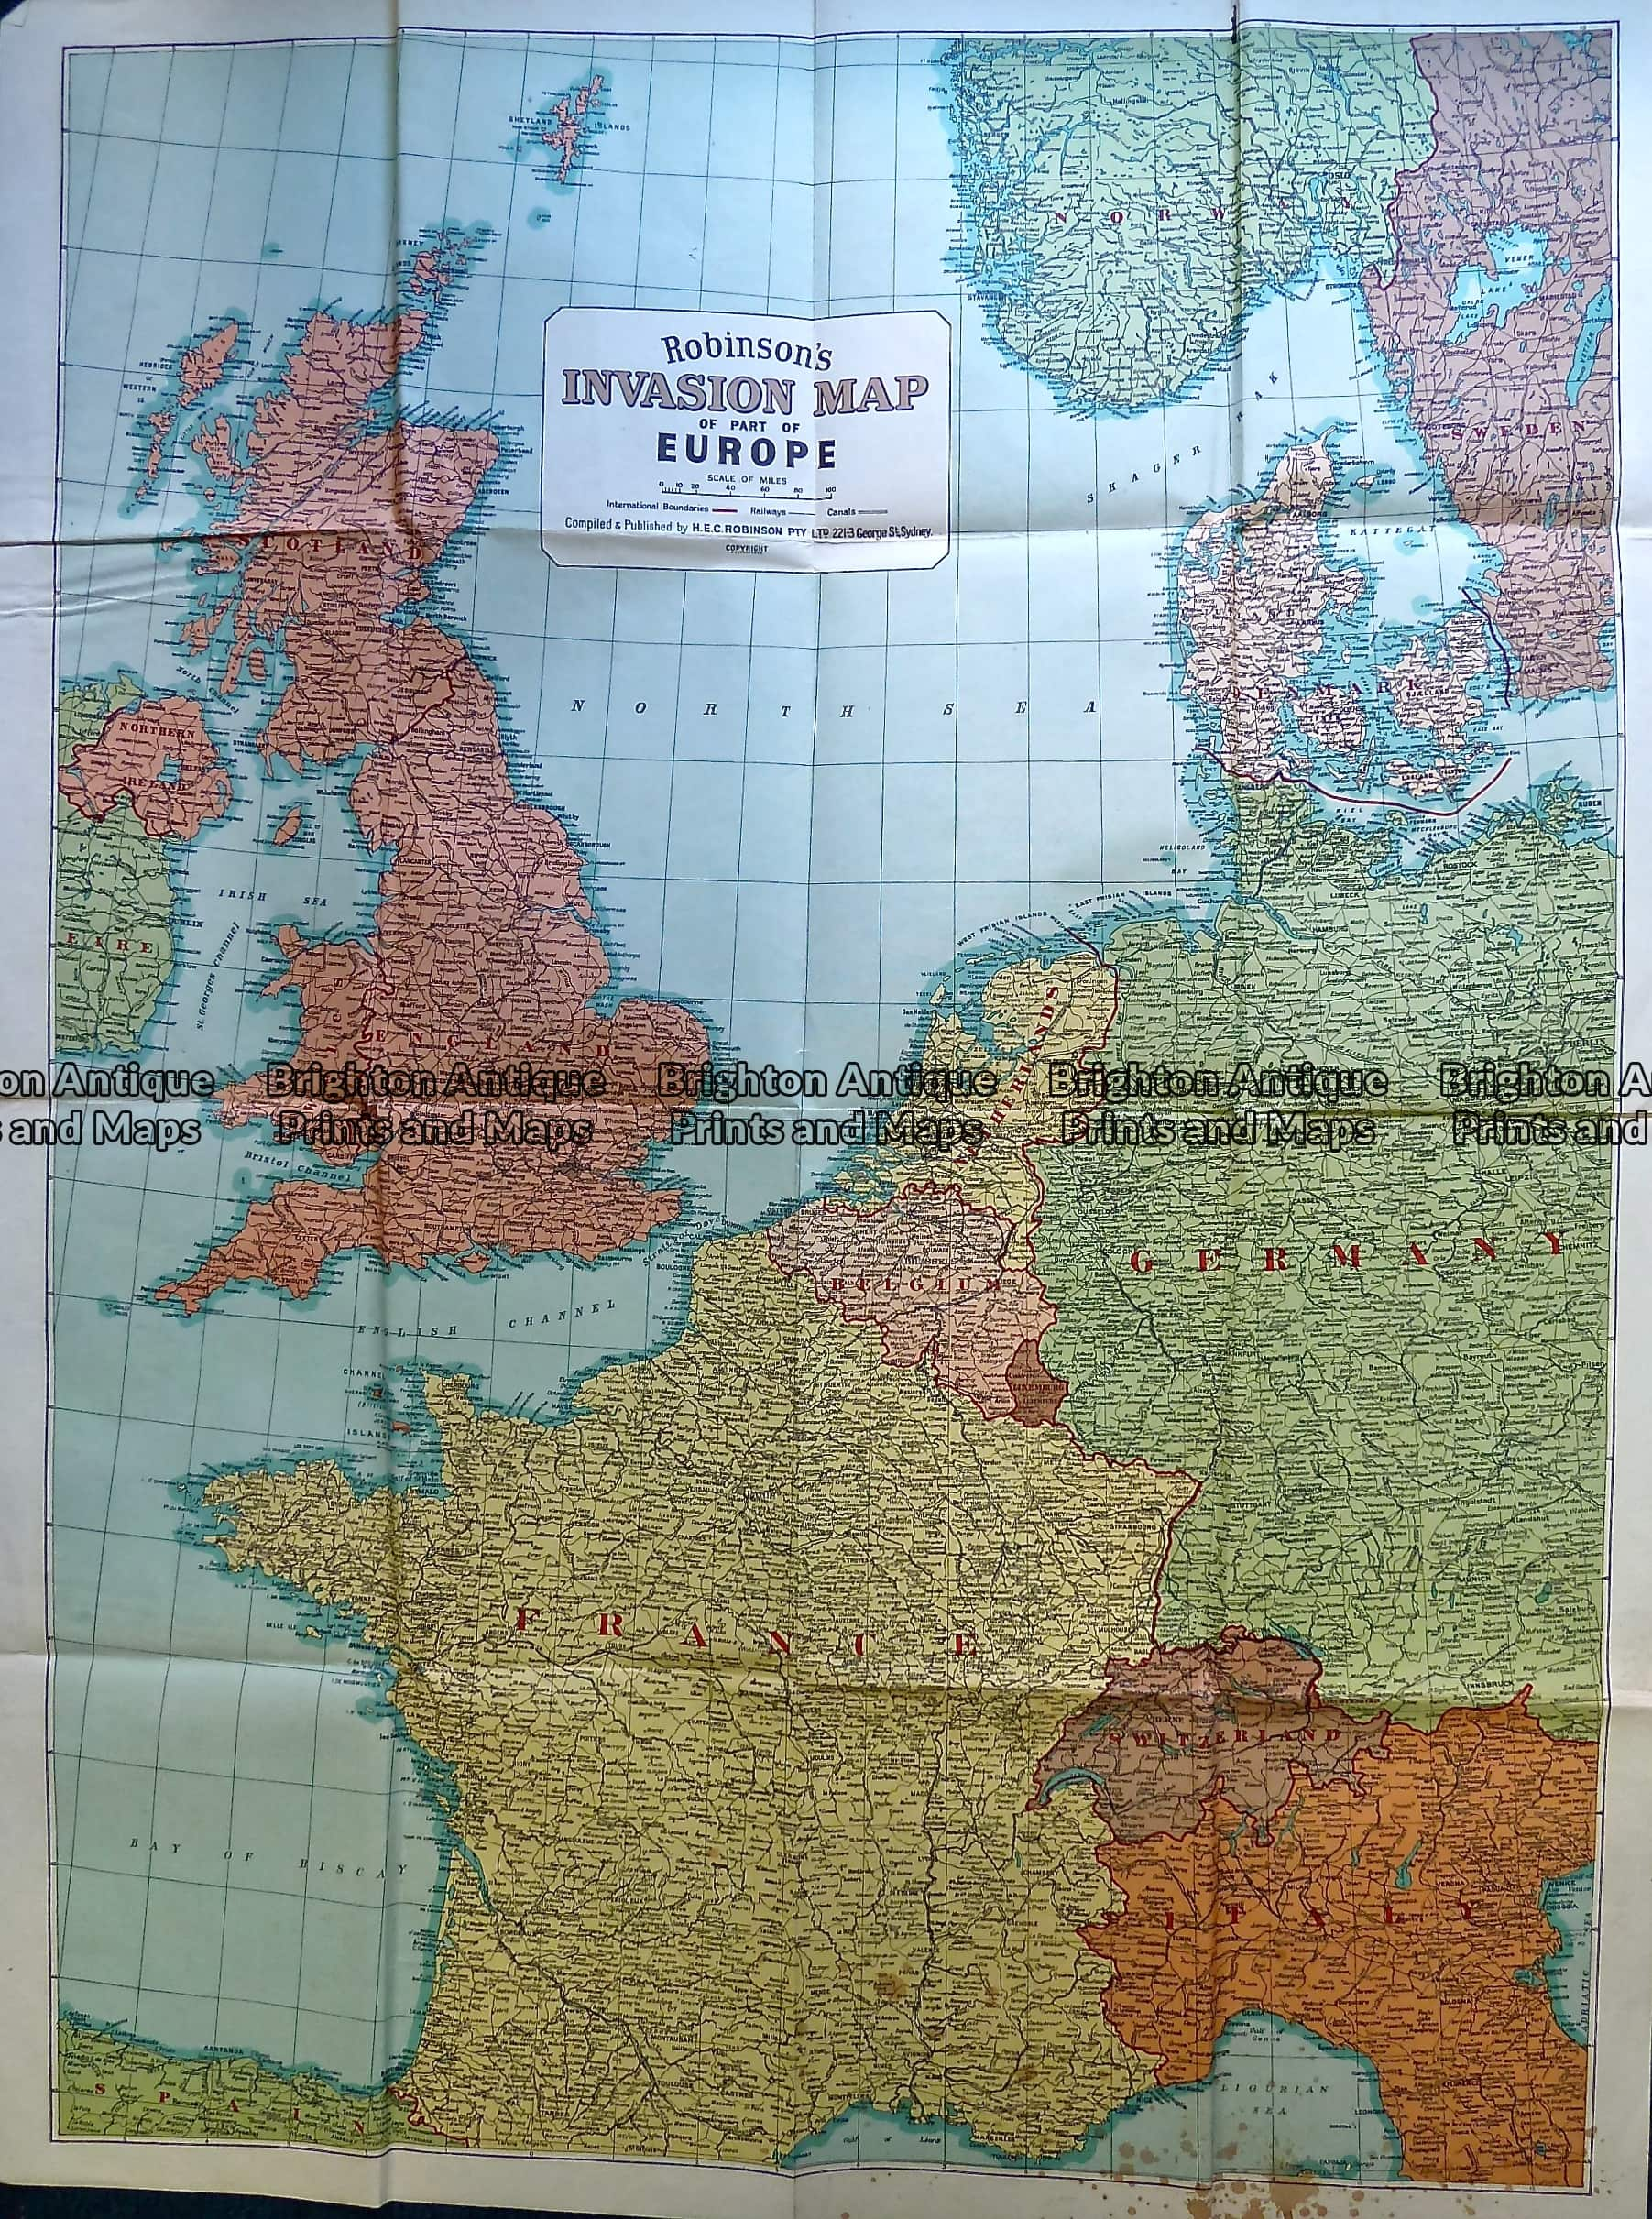 230 197 Europe World War Ii Invasion Map C 1940 S Brighton